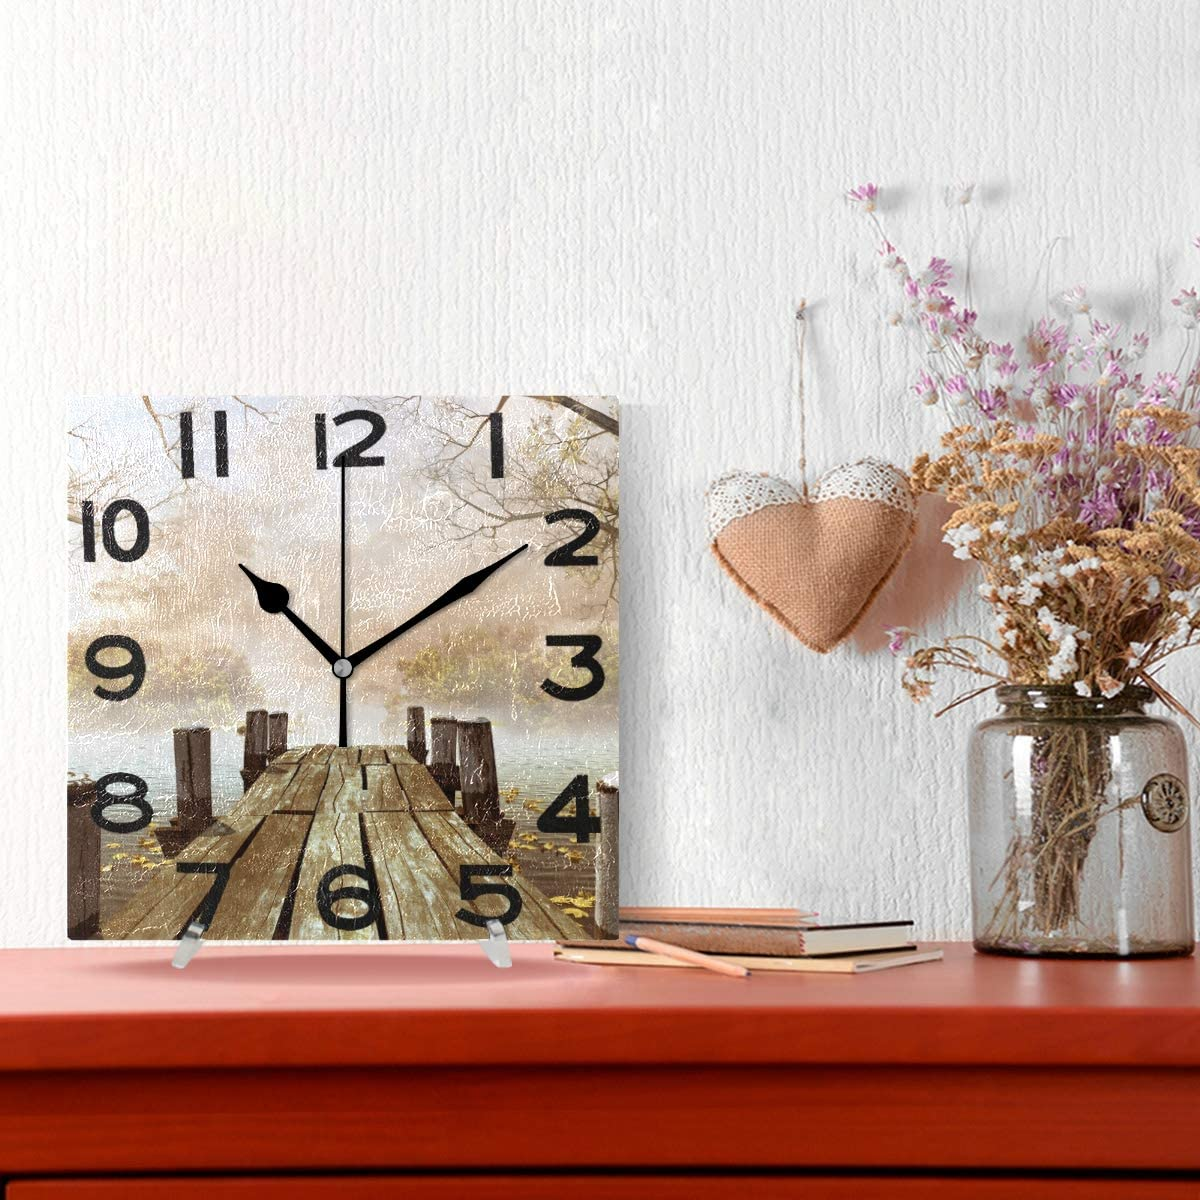 8 Inch Battery Operated Quartz Analog Quiet Desk Clock for Home,Office,School ZzWwR Chic Beautiful Sunny Sunflowers Oil Painting On Canvas Print Square Wall Clock